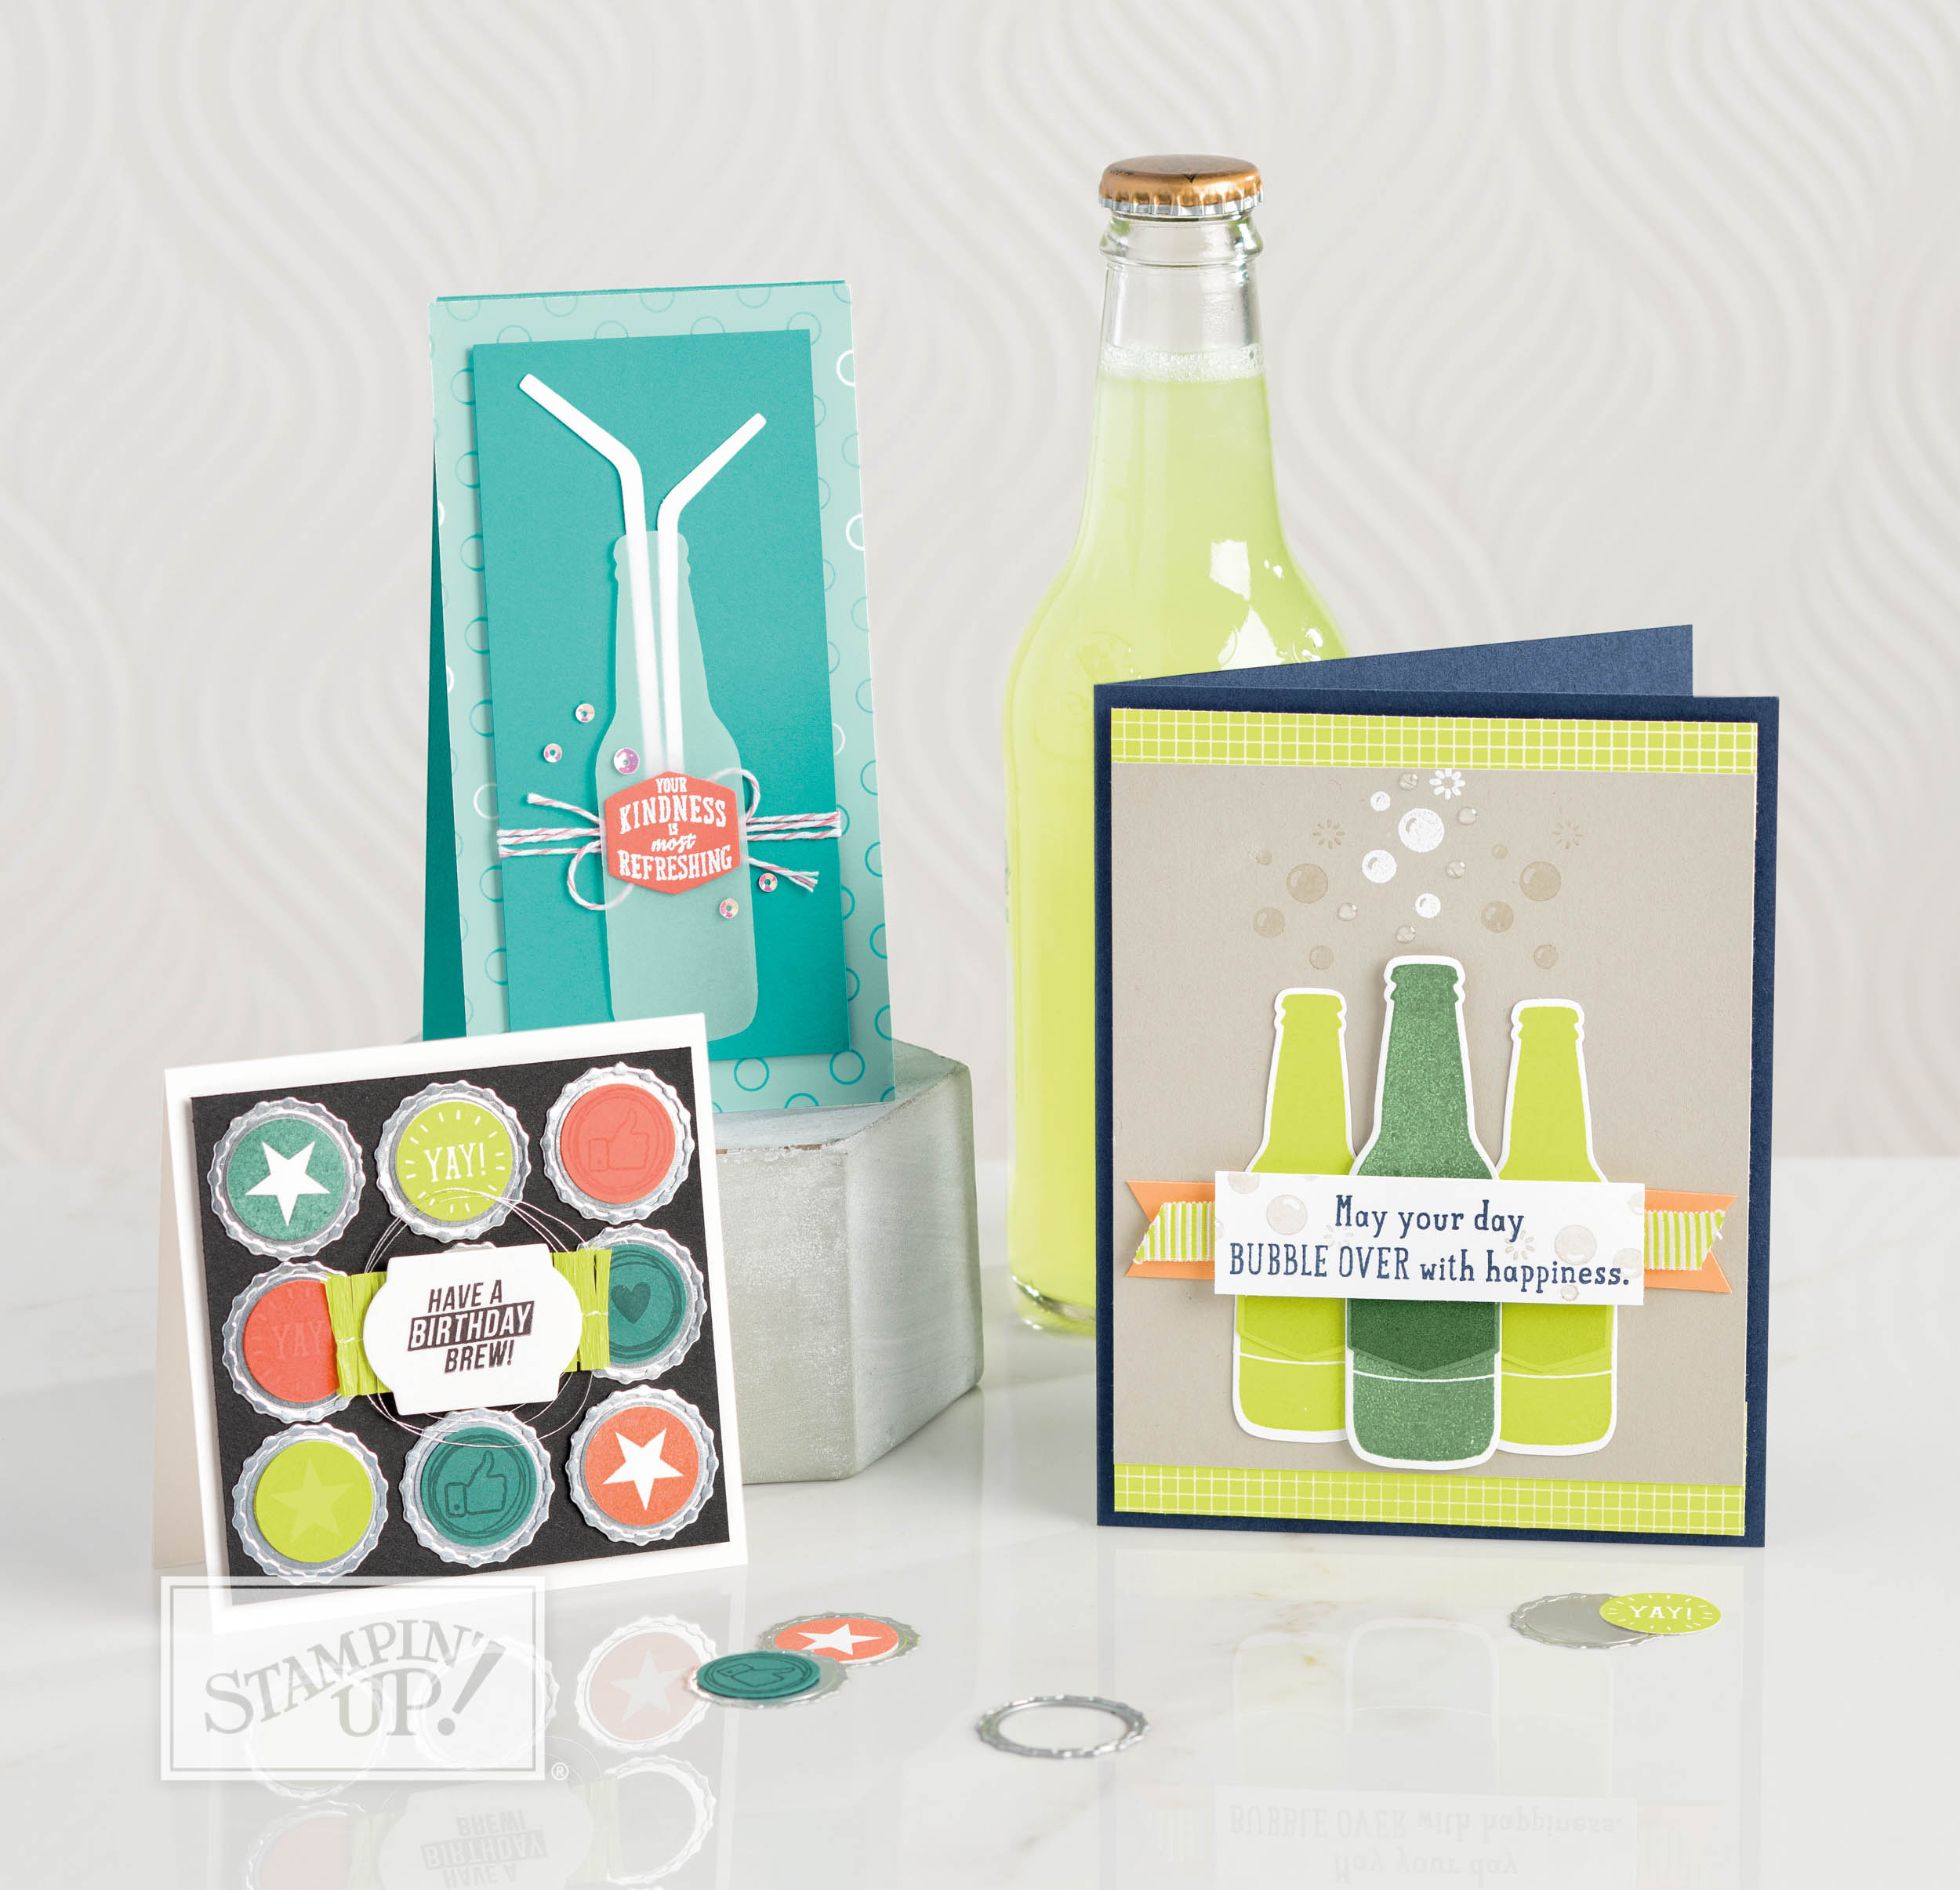 The Bubbles & Fizz Designer Series Paper video with wendy lee,stampin up, Bubble Over Stamp Set,stamping,handmade,#creativeleeyours,creative-lee yours, creatively yours,SU,SU cards,SAB,sale-a-bration,free paper,Bubbles Framelits Dies